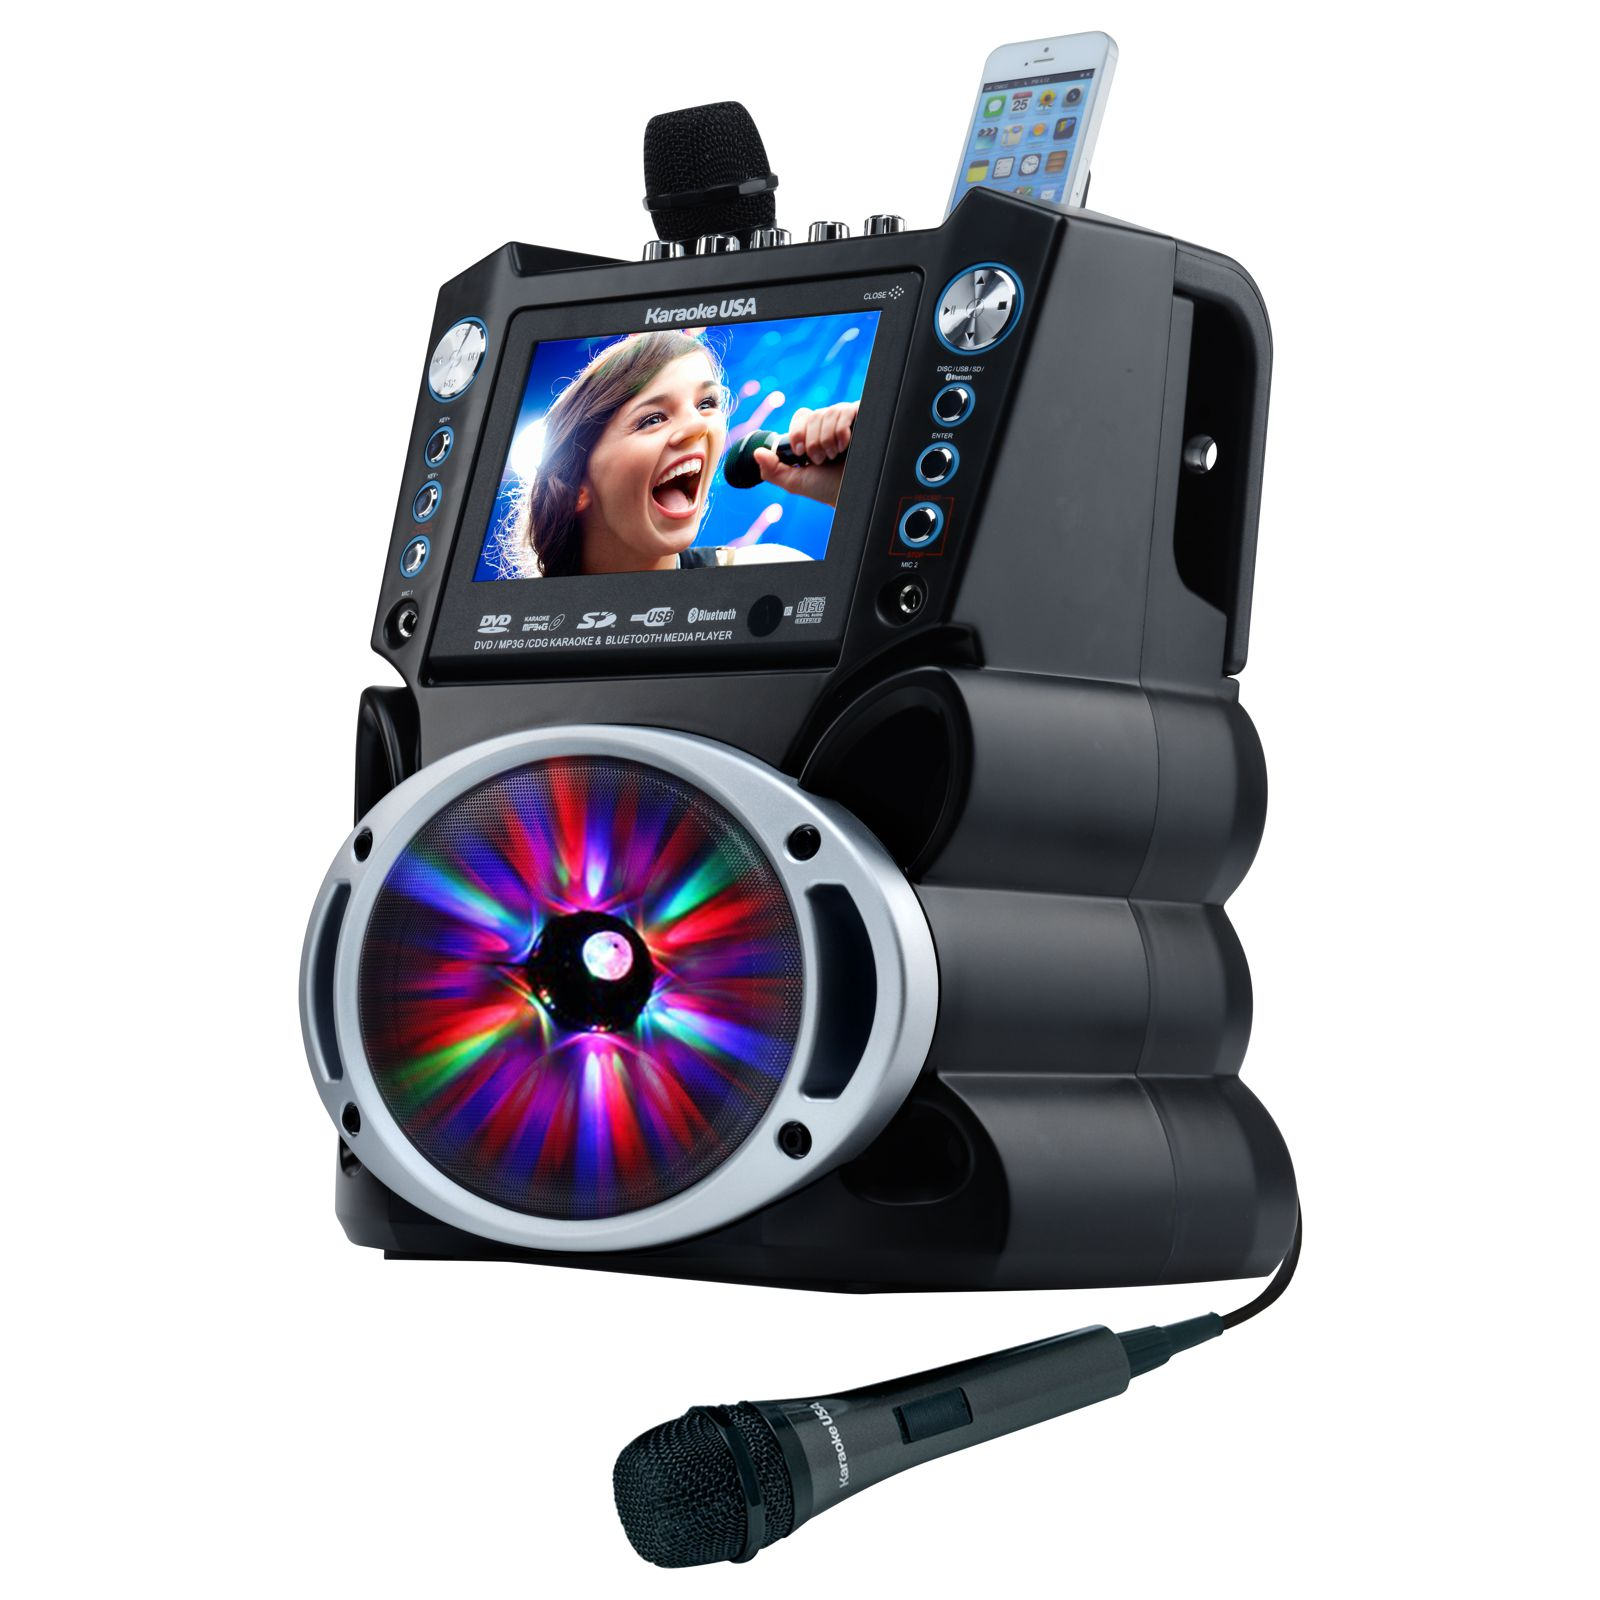 KARAOKE USA GF842 KARAOKE SYSTEM 7INCH COLOR SCREEN RECORDING